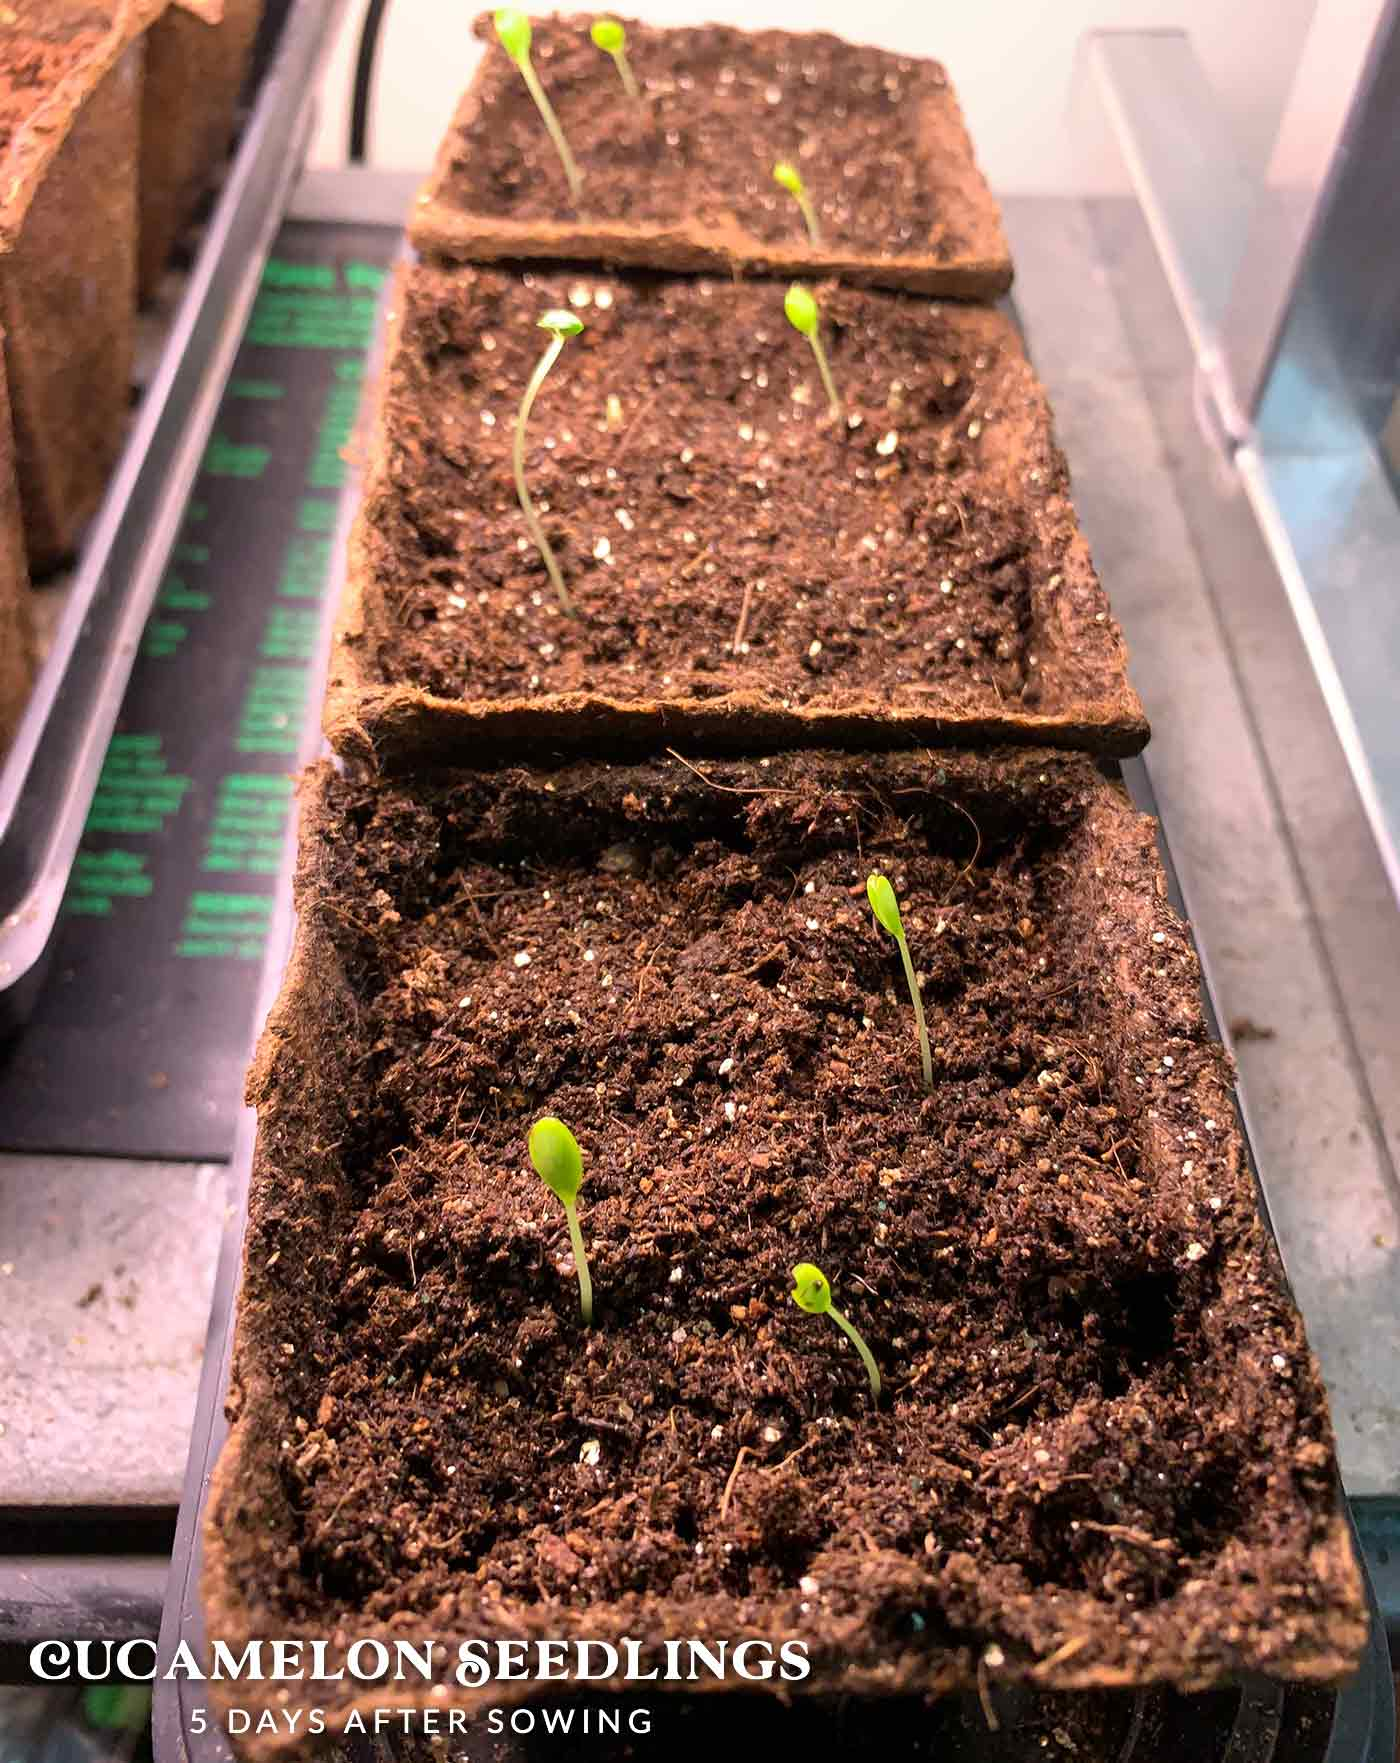 Cucamelon seedlings in compostable pots.